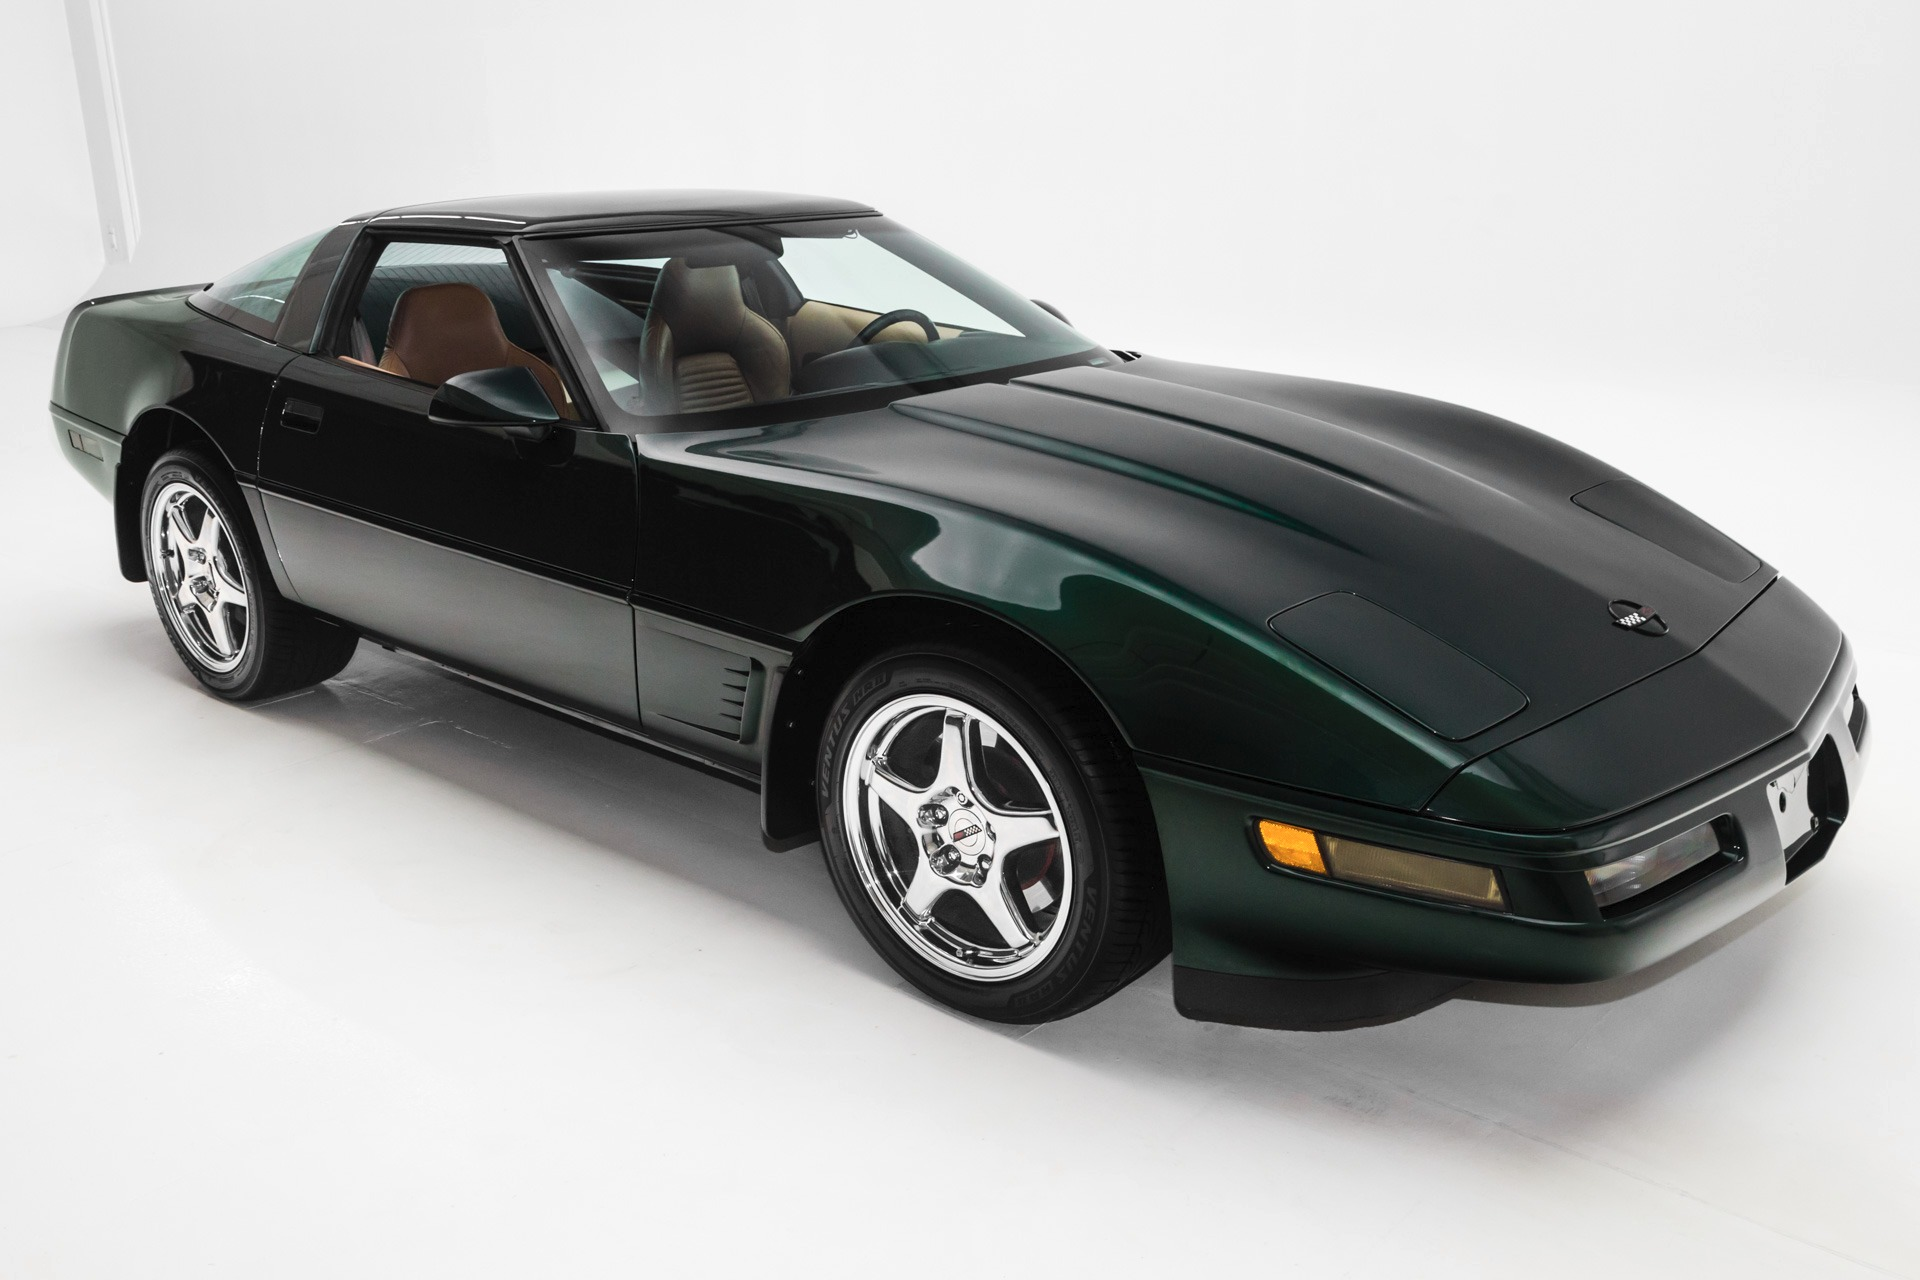 1996 Chevrolet Corvette Removable top LT1 - American Dream ...